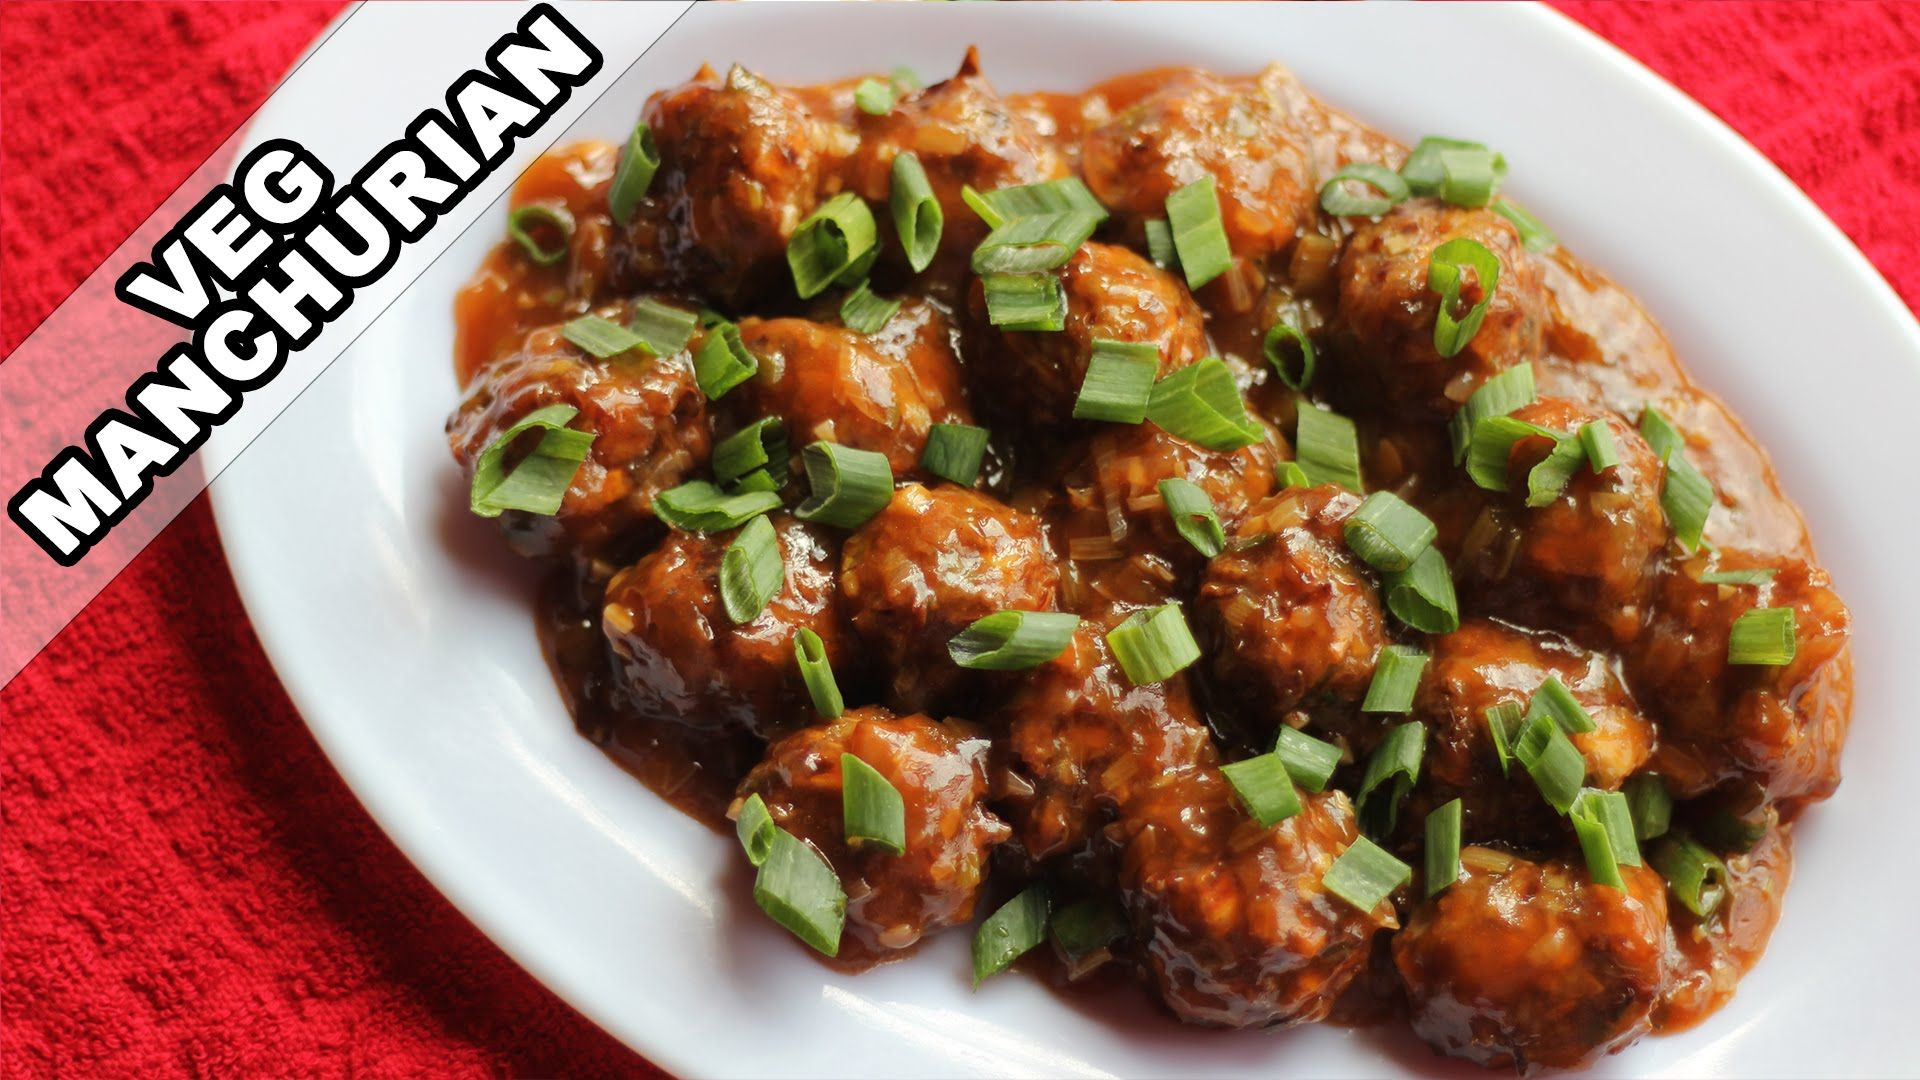 Video on how to make vegetarian manchurian by kanaks kitchen video on how to make vegetarian manchurian by kanaks kitchen kanakskitchen tfplcompany tutorial howto fat how diy design youtube culinary recipe forumfinder Image collections